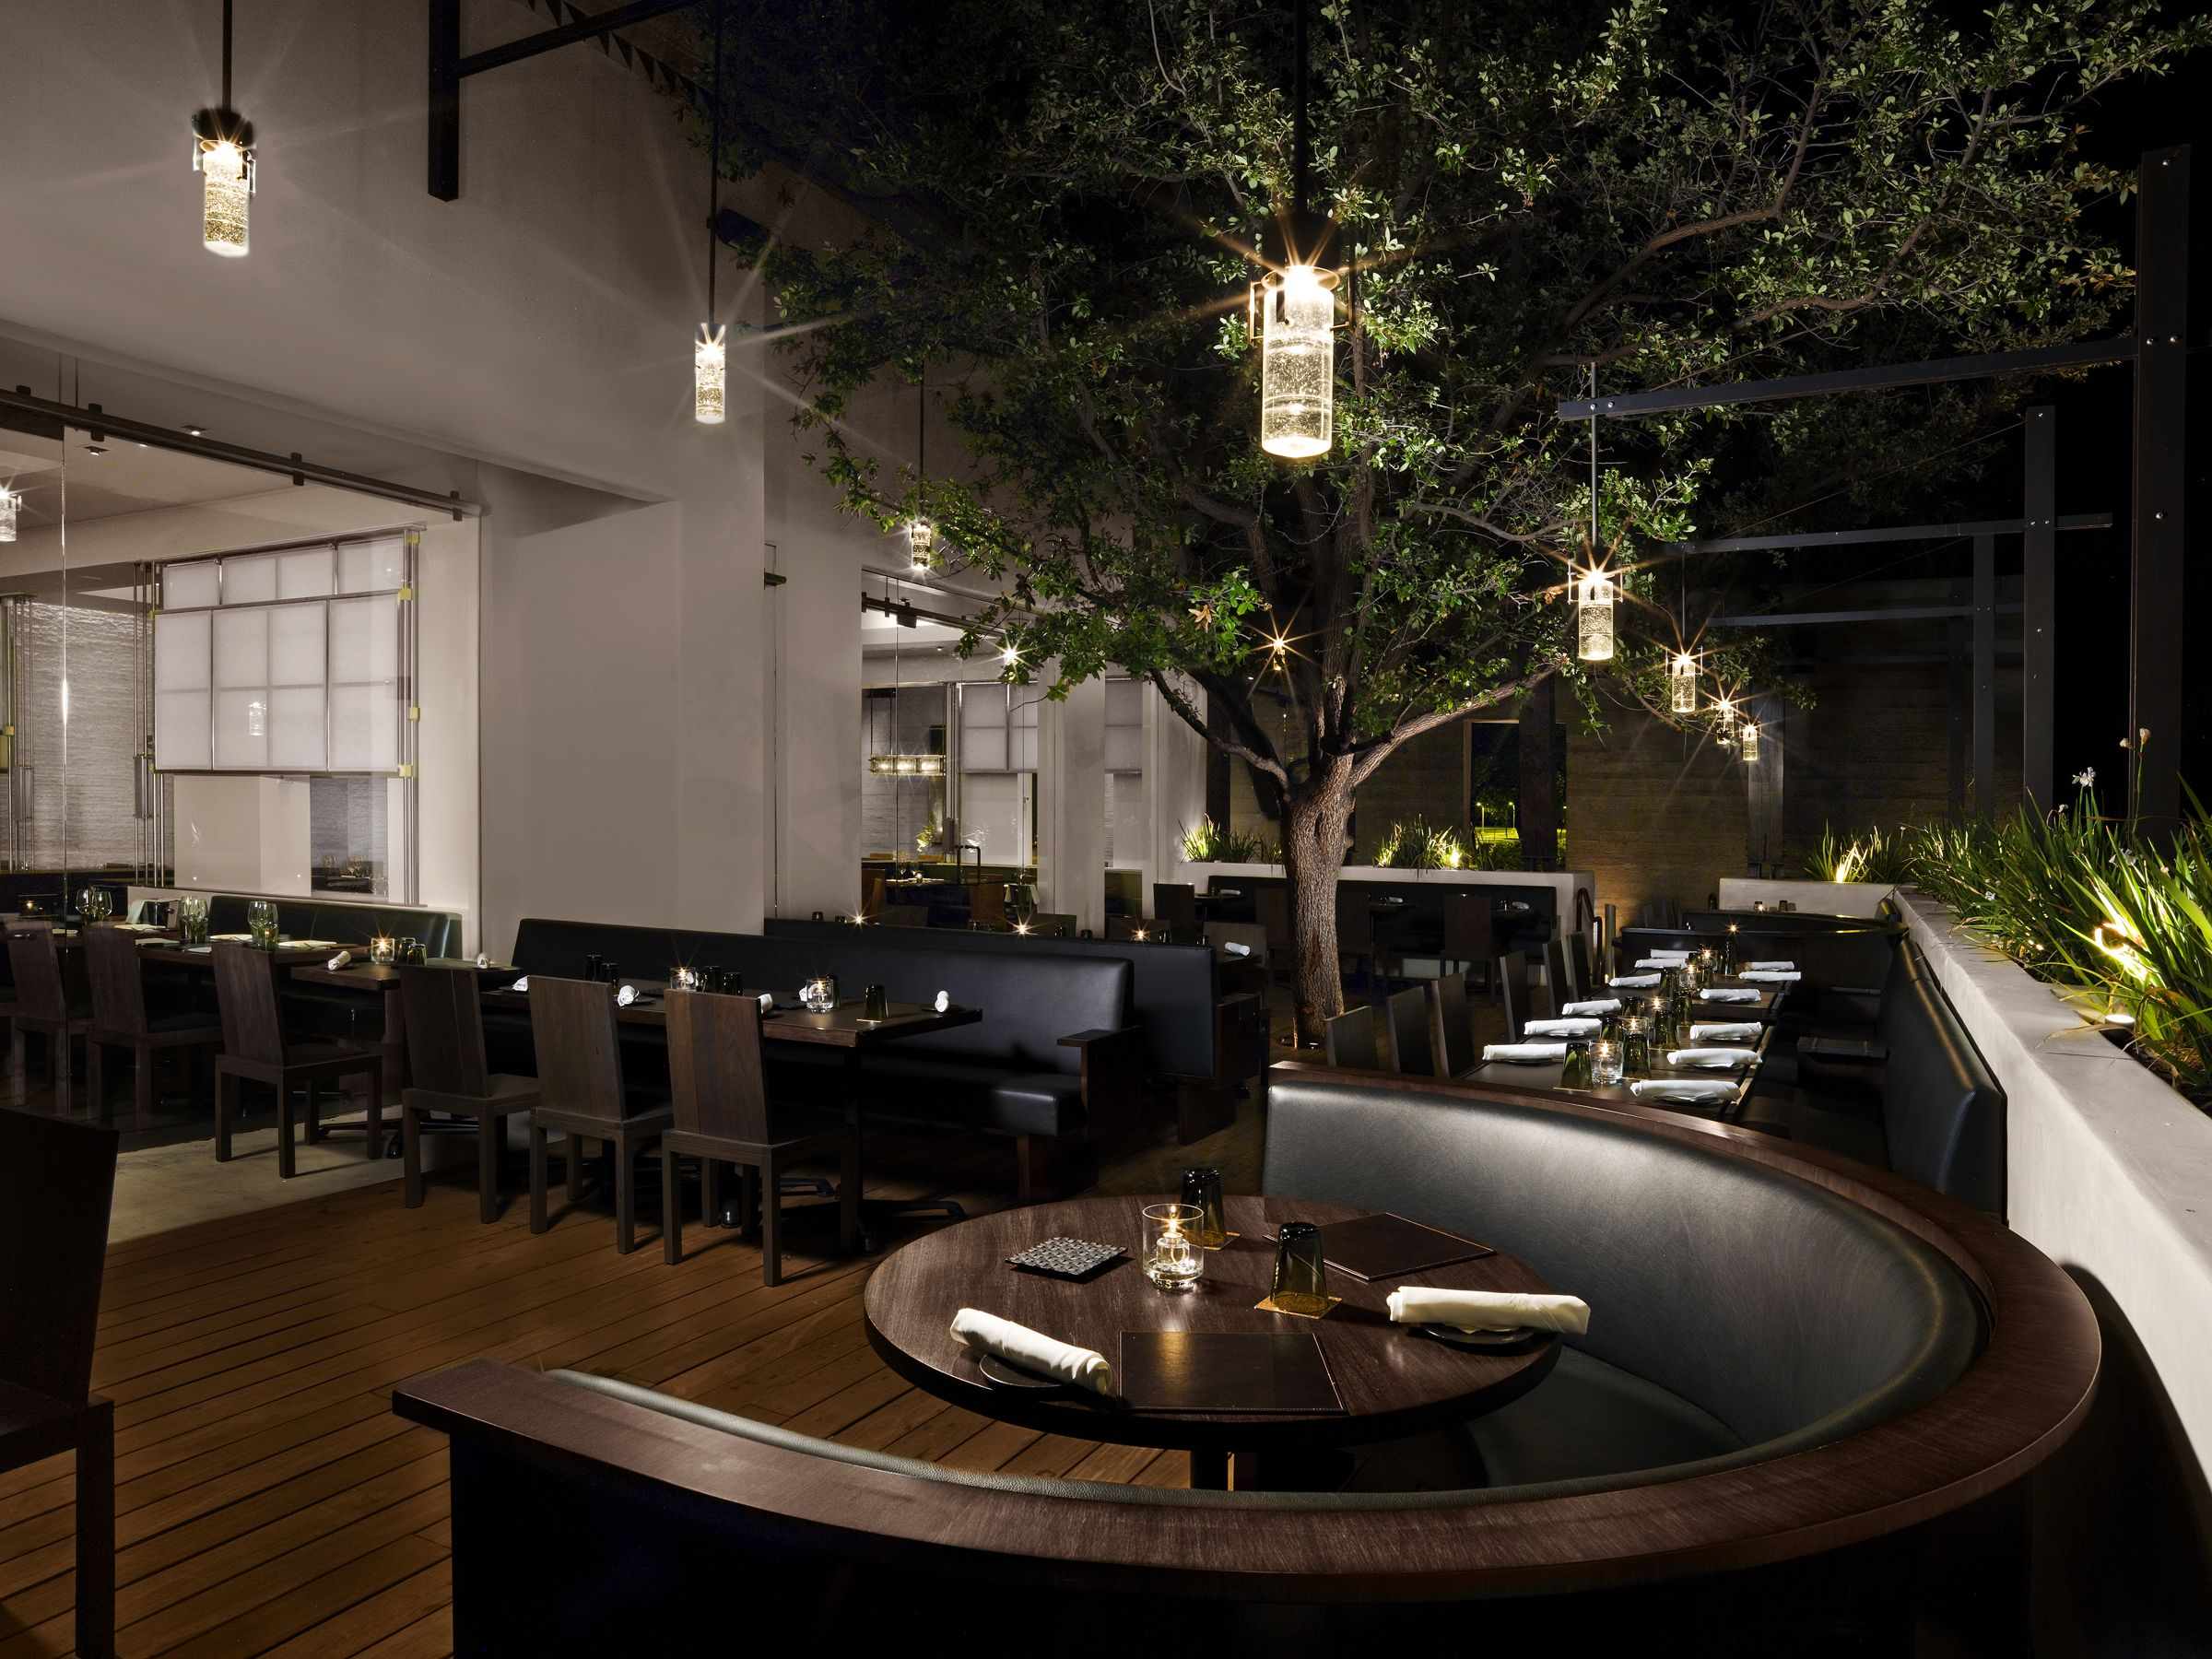 Explore Cafe Restaurant Outdoor Restaurant Patio and